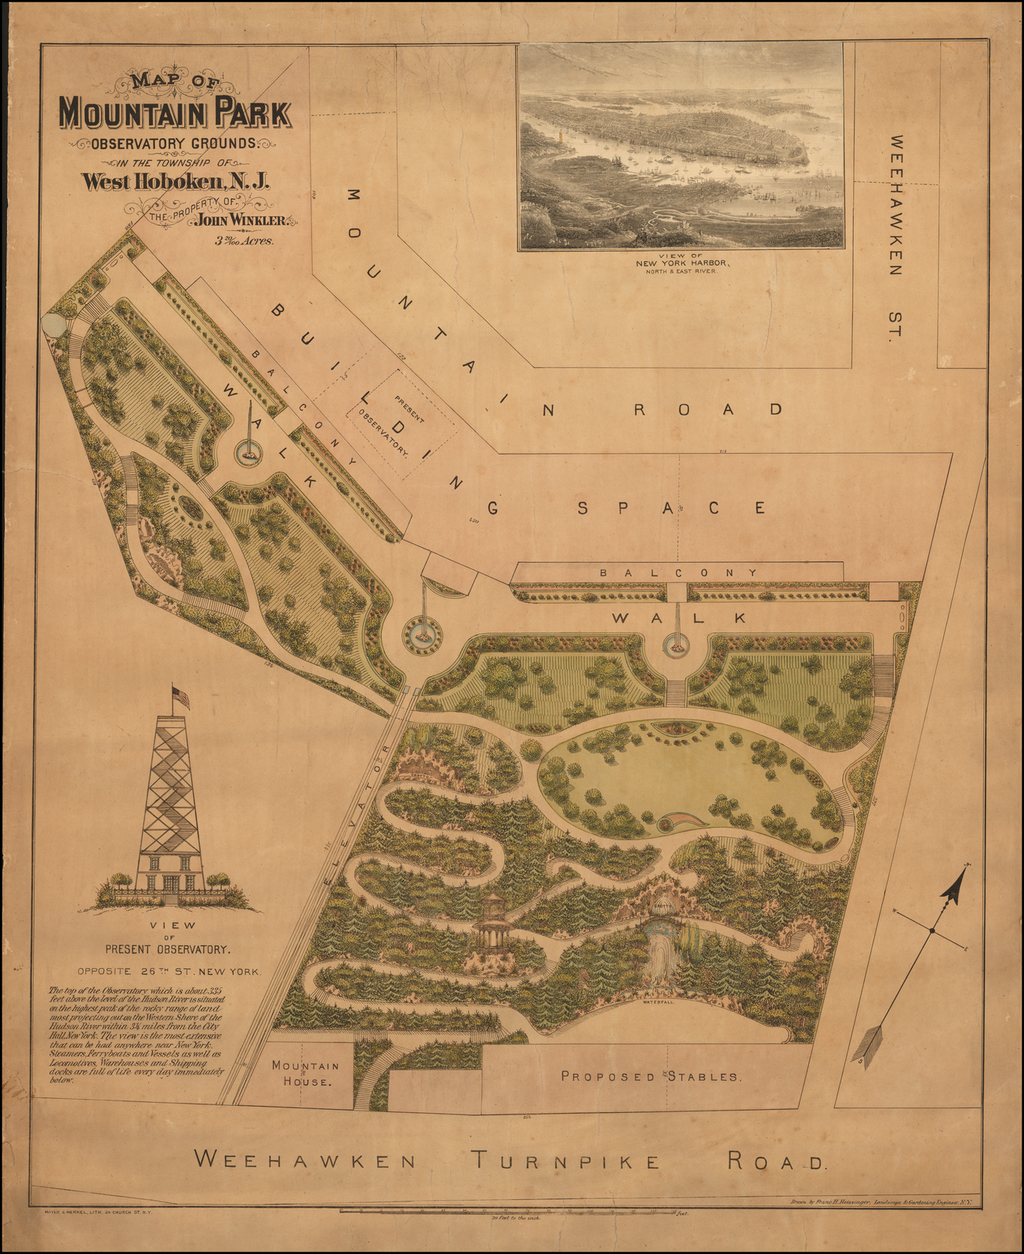 Map of Mountain Park Observatory Grounds in the Township of West Hoboken, N.J. The Property of John Winkler. By Franz Xaver Heissinger